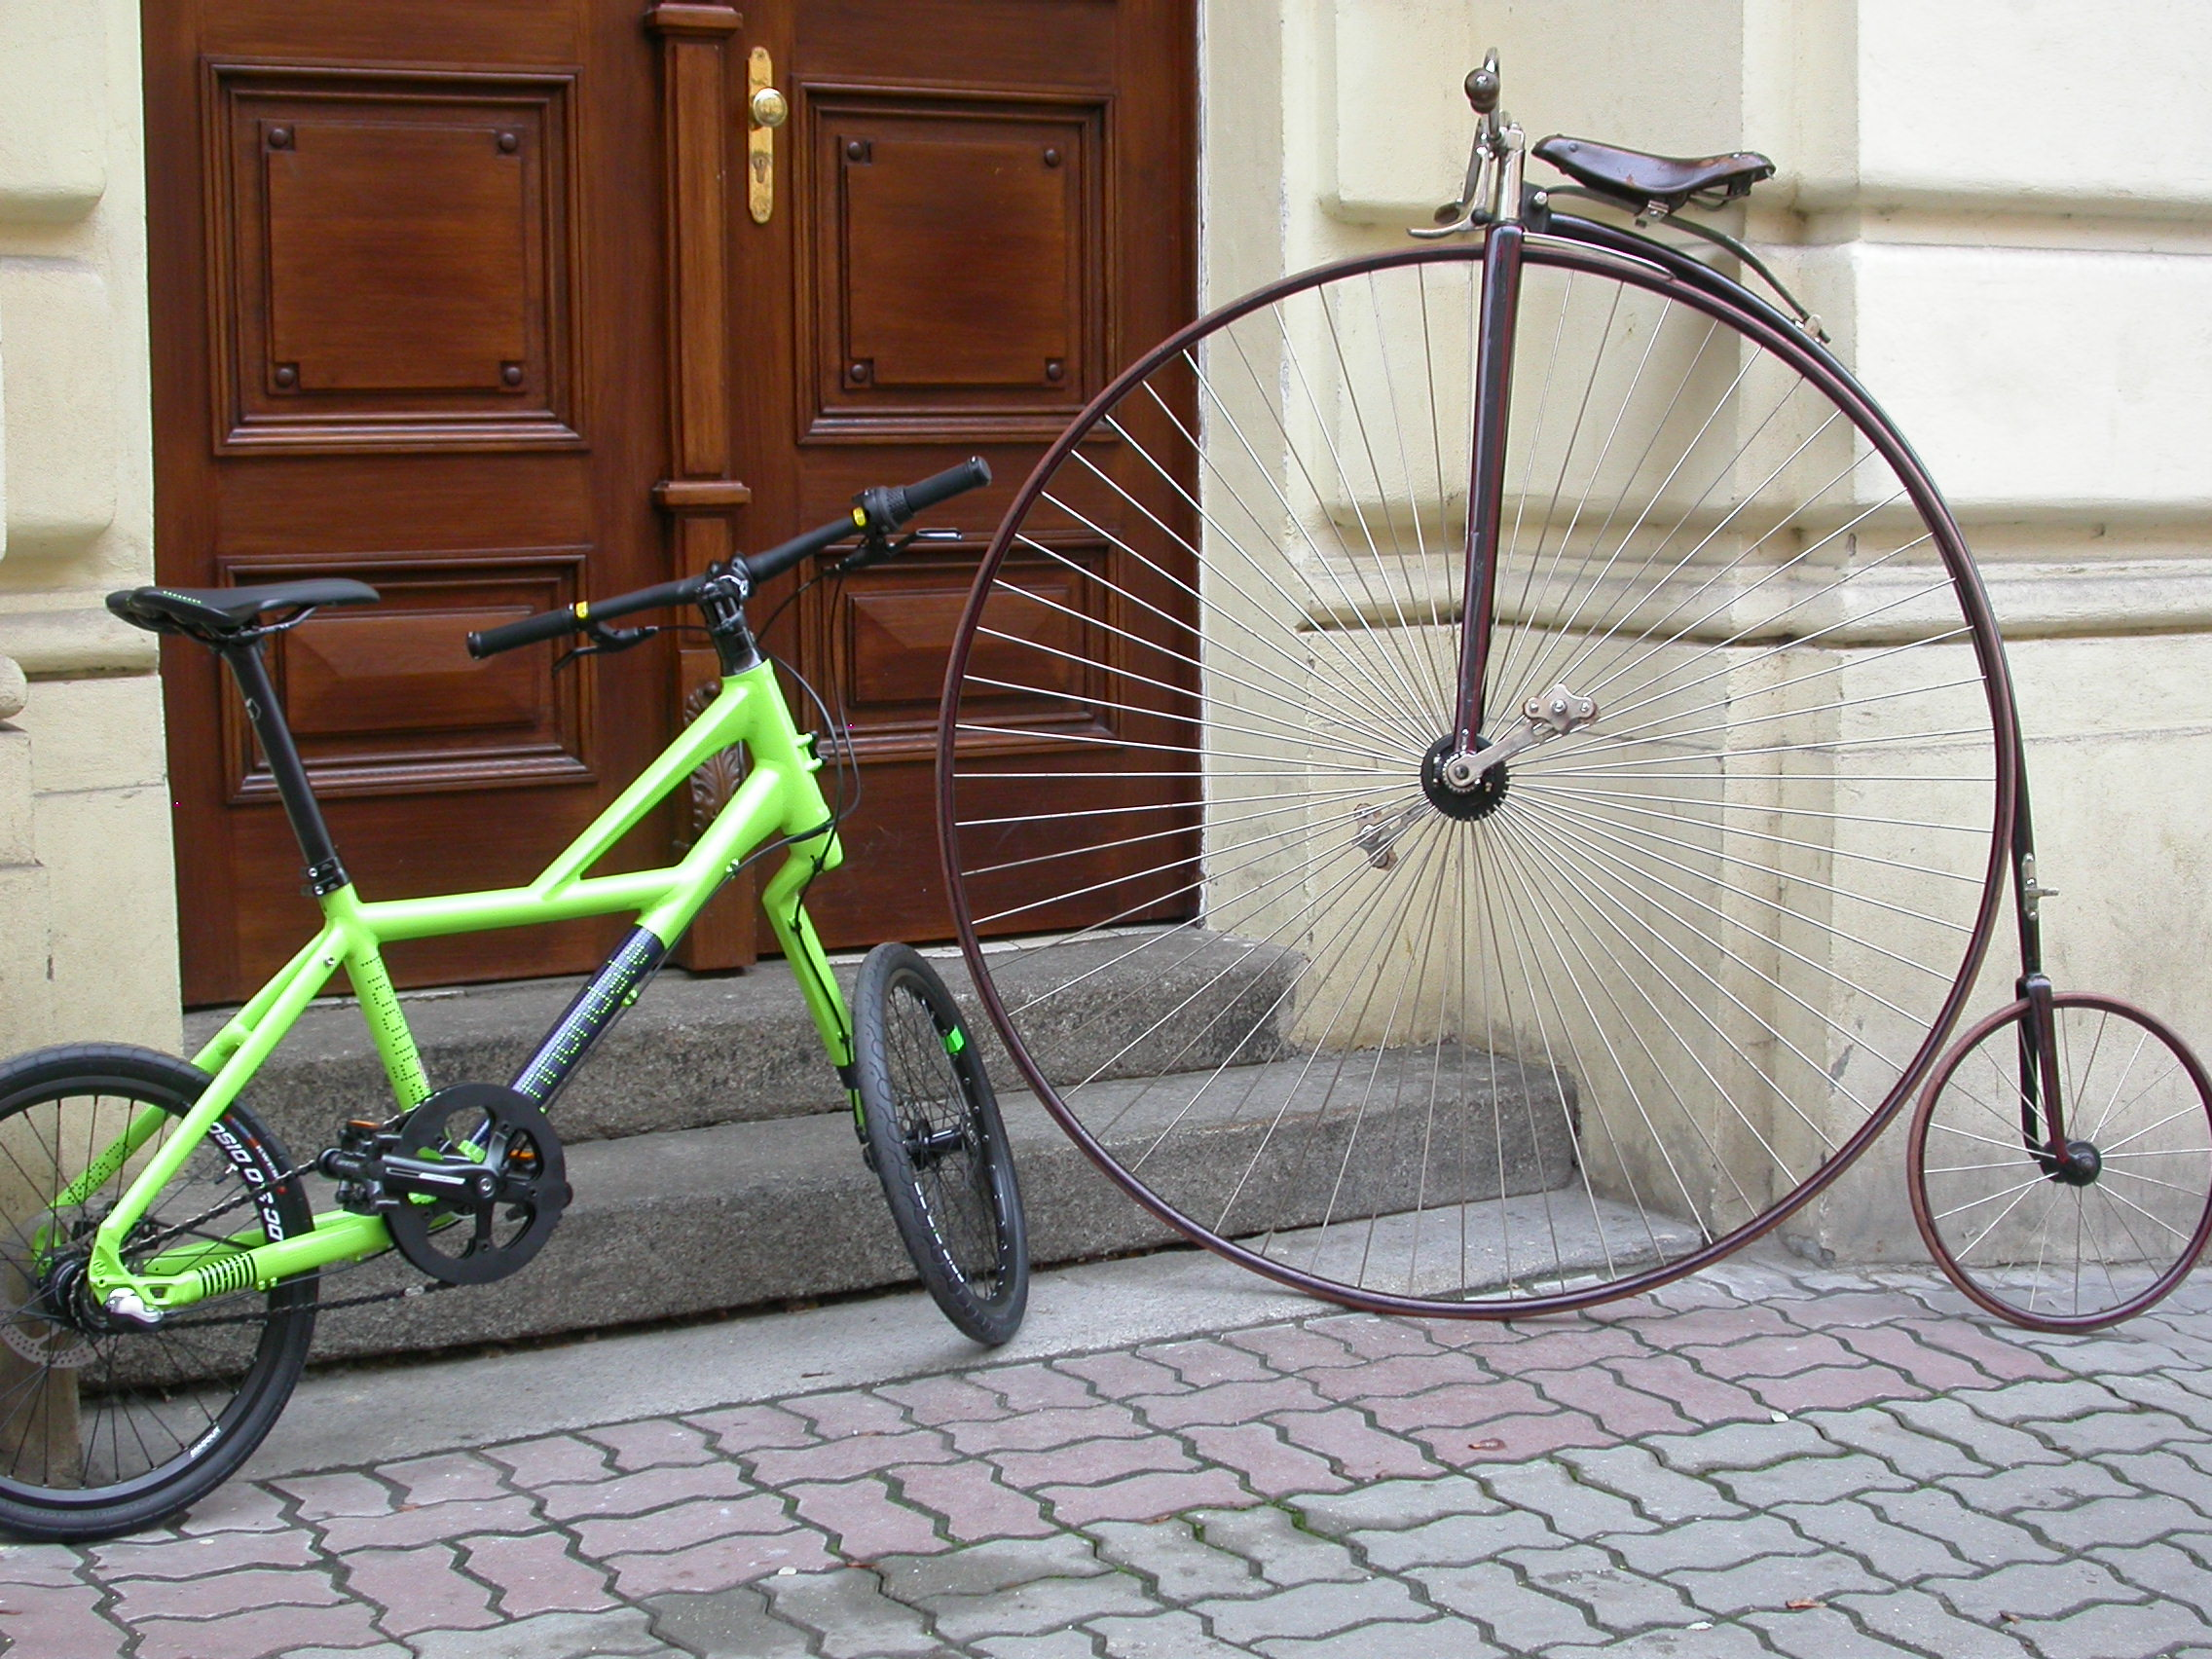 Cannondale Hooligan (2012) vs. Coventry Machinists Co. Ordinary bike (1886)